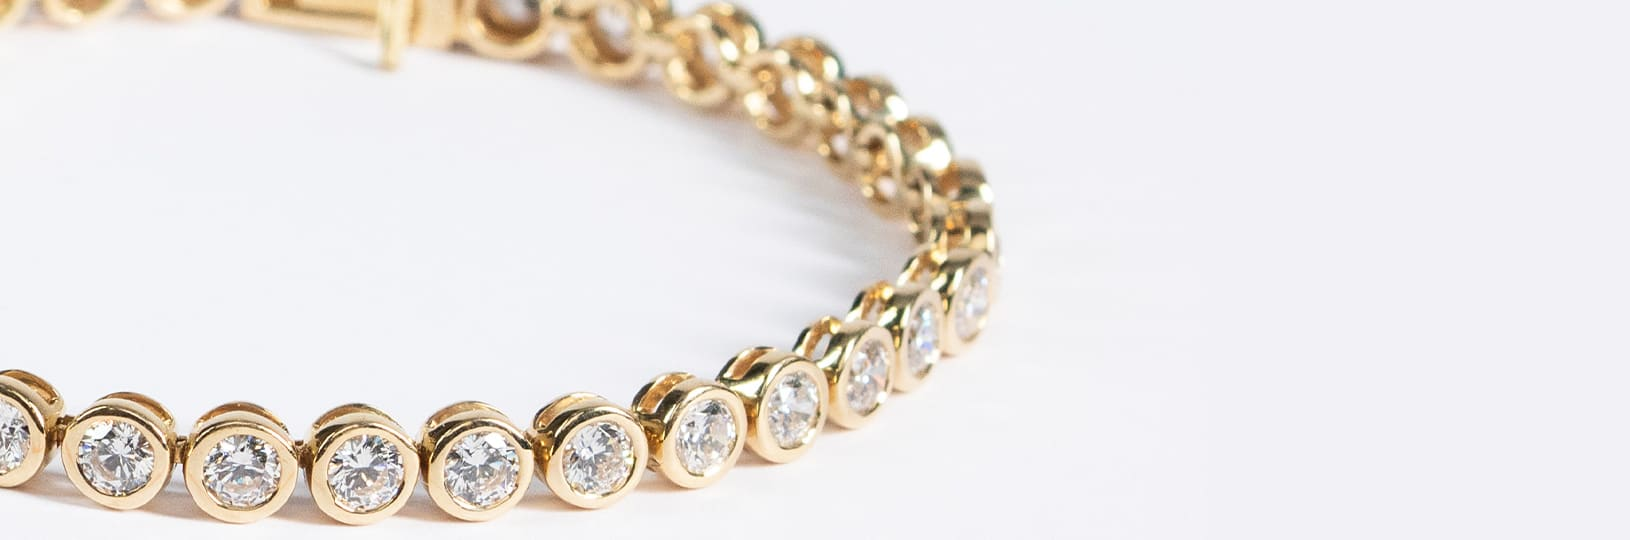 A yellow gold bracelet featuring several round cut diamonds